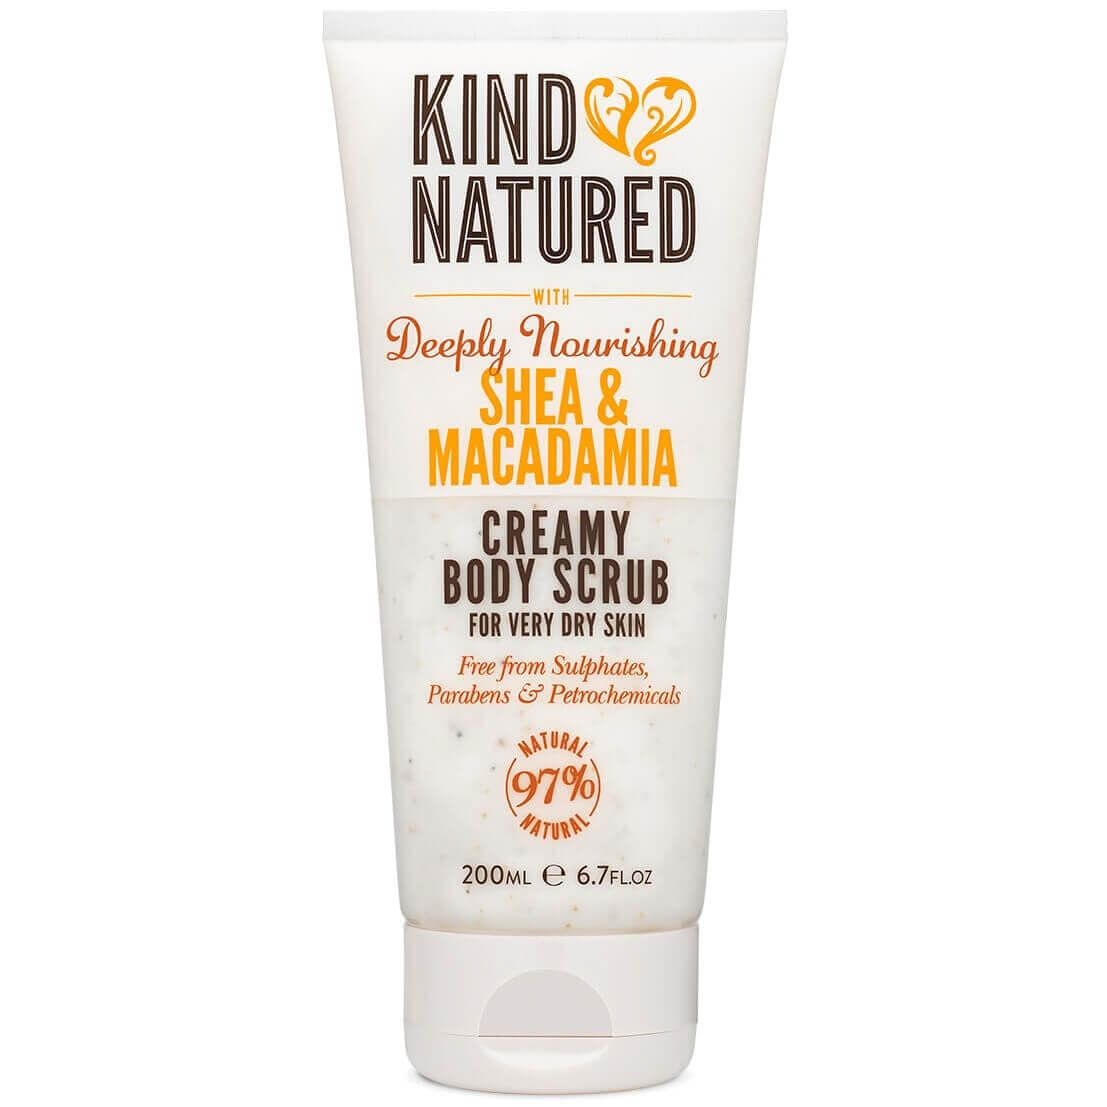 Kind Natured Deeply Nourishing Shea & Macadamia Creamy Body Scrub για Πολύ Ξηρή Επιδερμίδα 200ml